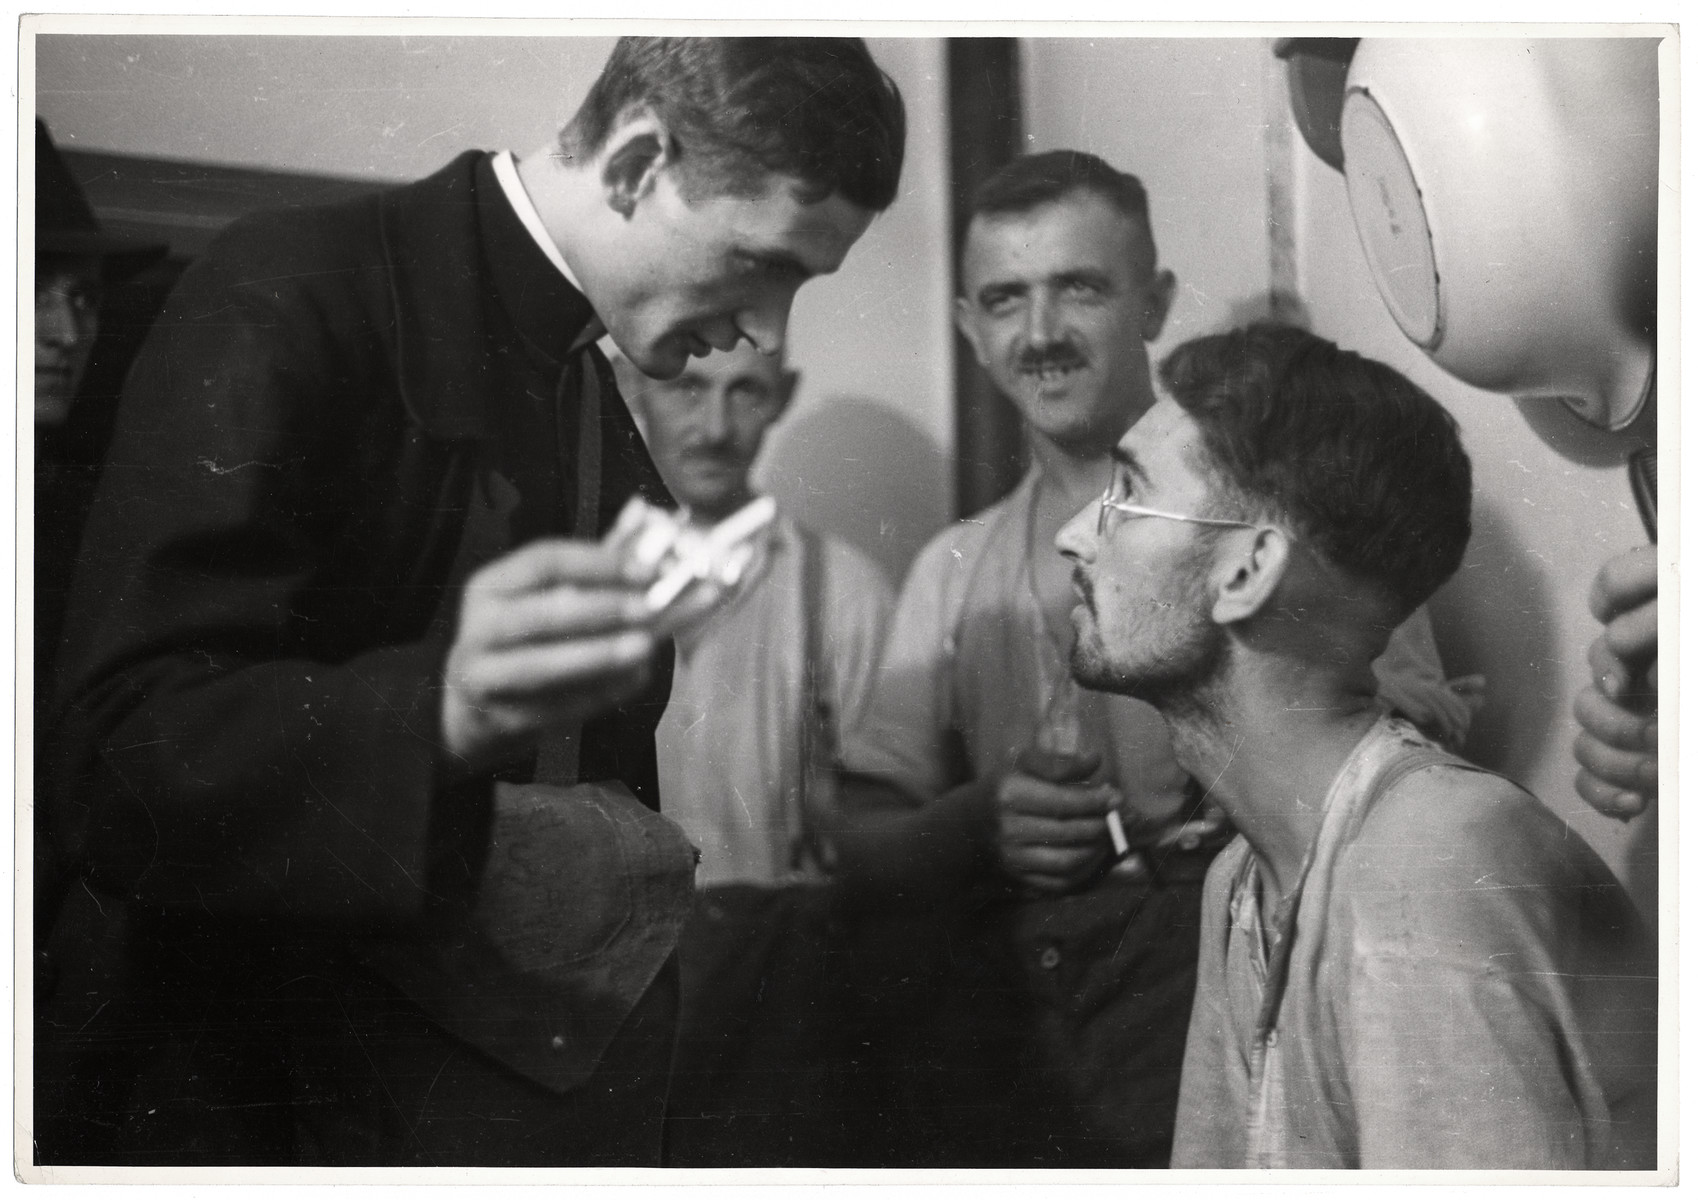 A Polish priest visits German POWs and offers them cigarettes.